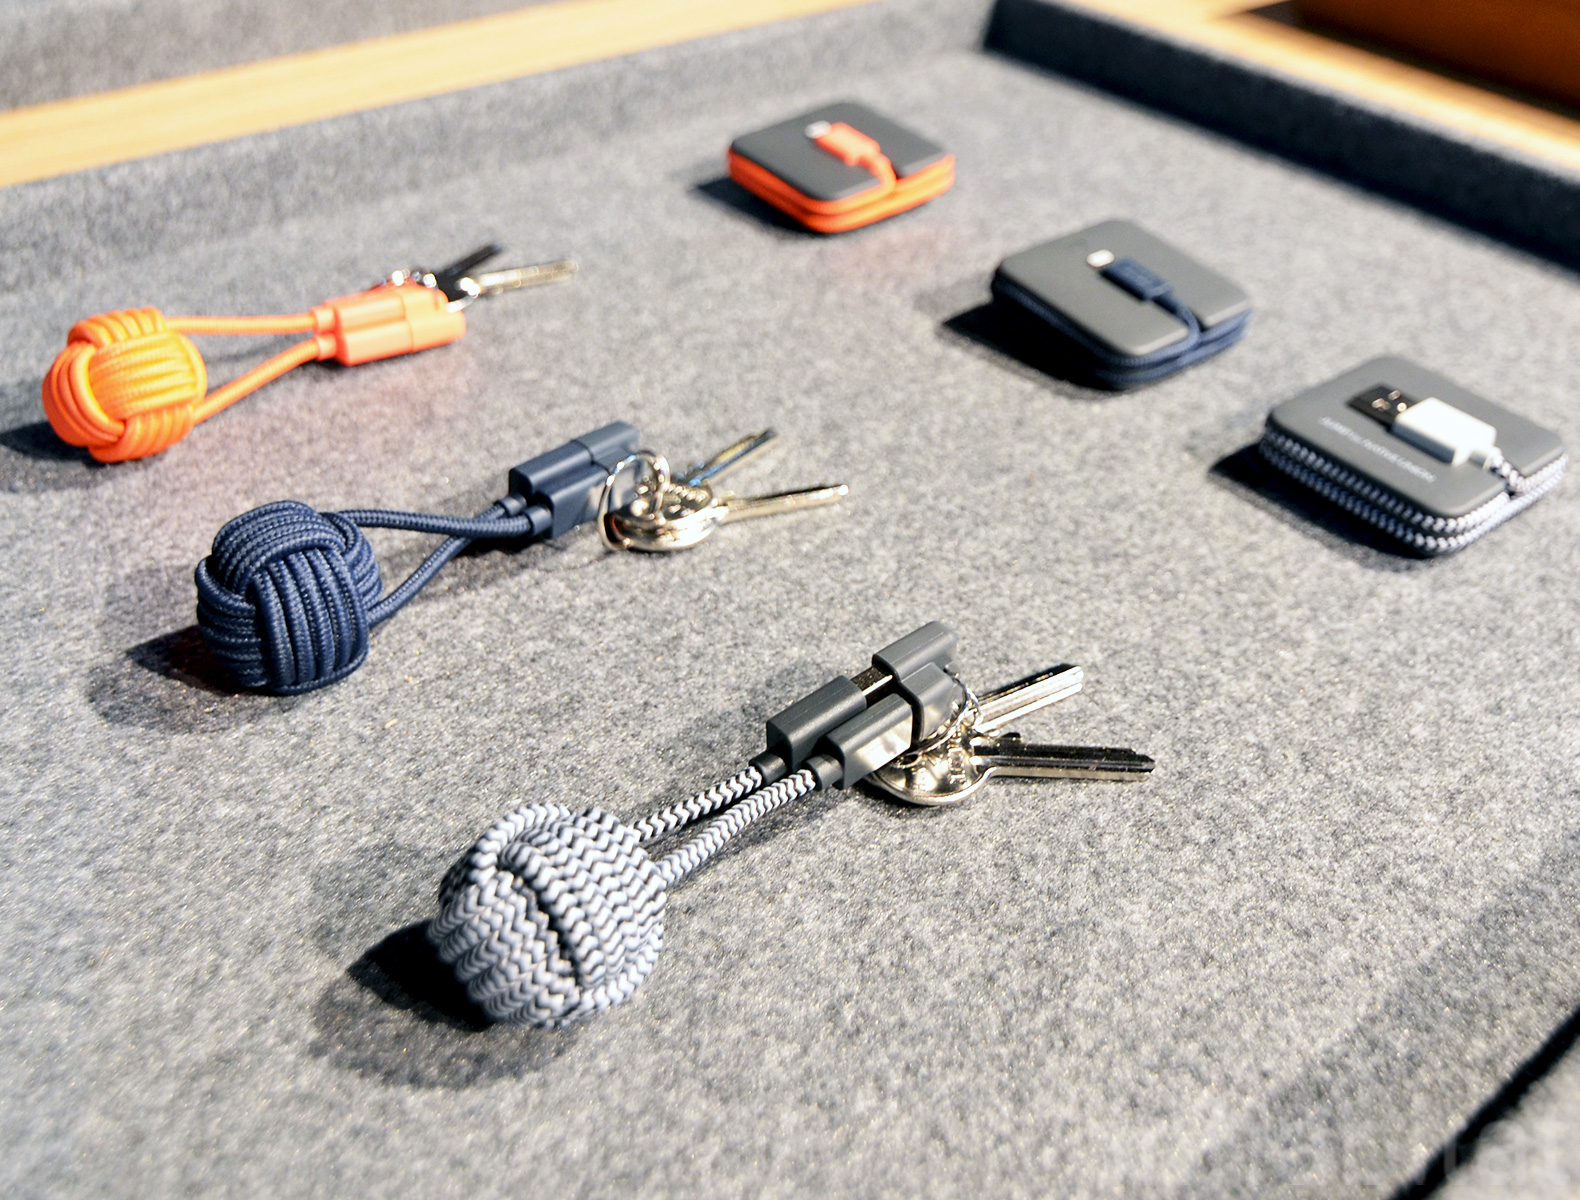 Ditch your iPhone charger with Native Union's genius KEY cable